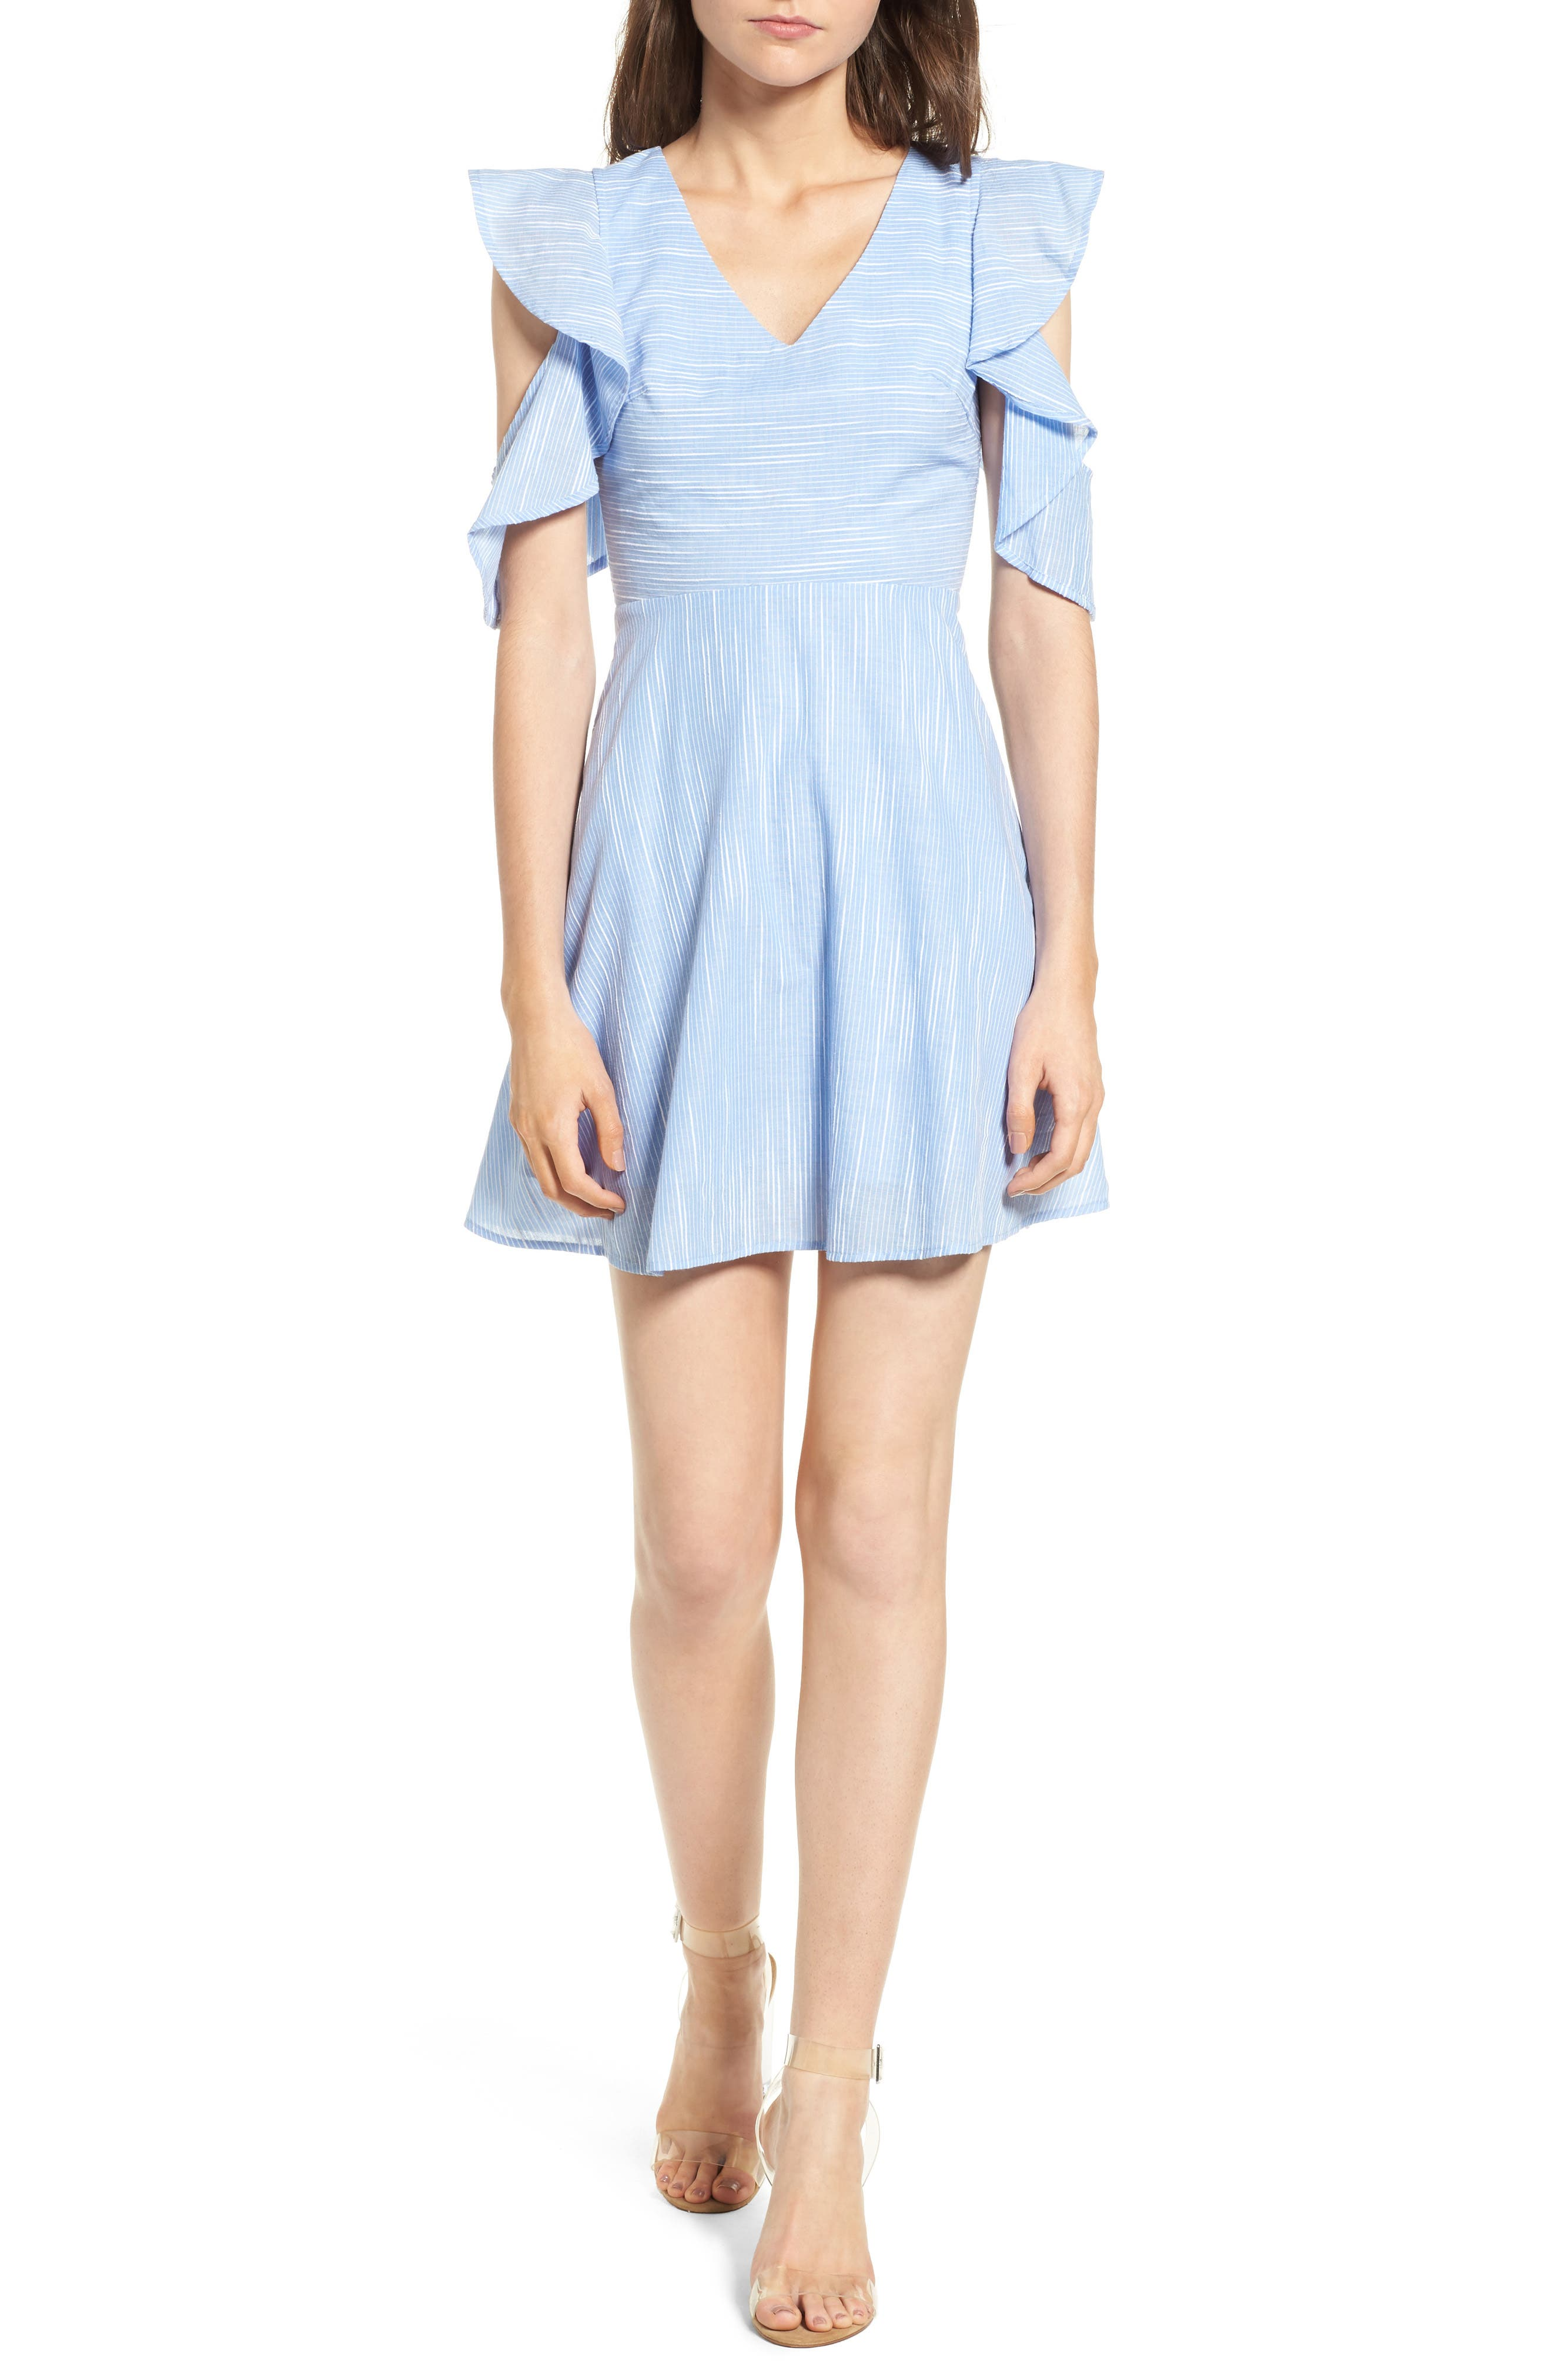 J.O.A. Cotton Cold Shoulder Skater Dress